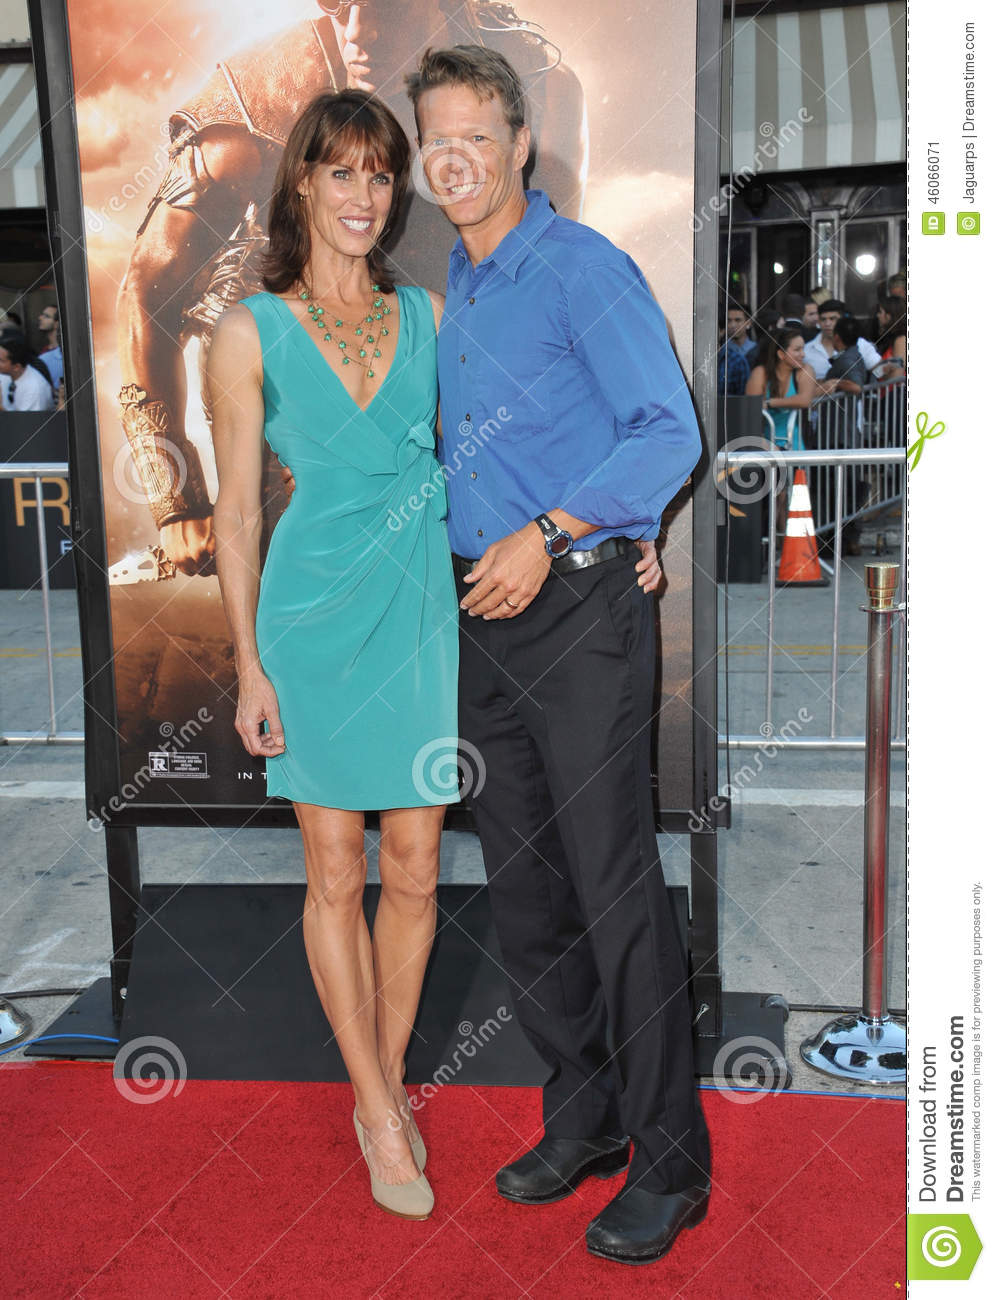 alexandra paul twinalexandra paul skating, alexandra paul / mitchell islam, alexandra paul borat, alexandra paul recruitment llp, alexandra paul instagram, alexandra paul perry mason, alexandra paul skate, alexandra paul ted talk, alexandra paul, alexandra paul baywatch, alexandra paul actress, alexandra paul christine, alexandra paul figure skater, alexandra paul mr skin, alexandra paul net worth, alexandra paul imdb, alexandra paul movies, alexandra paul twin